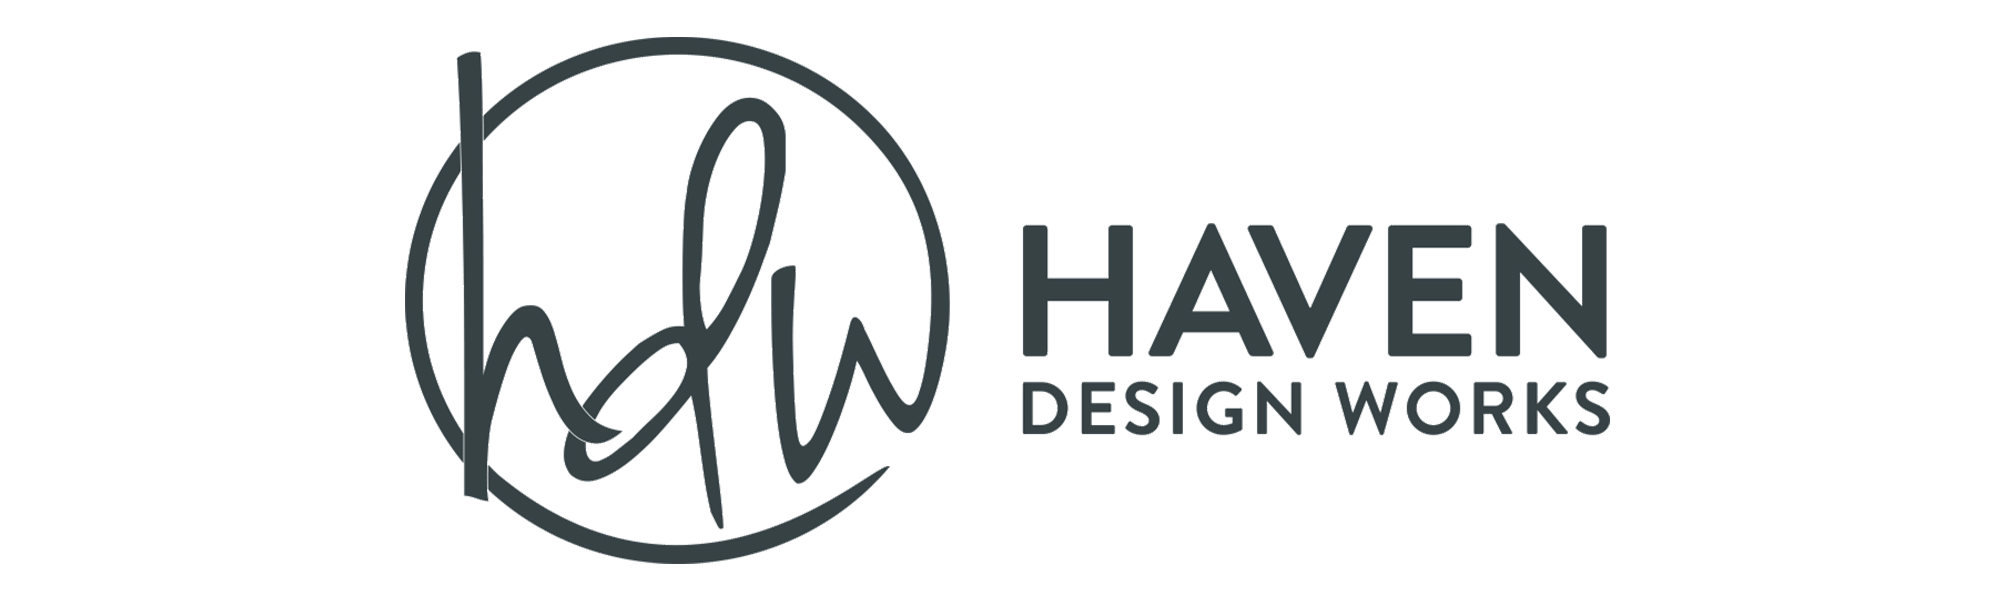 Haven Design Works